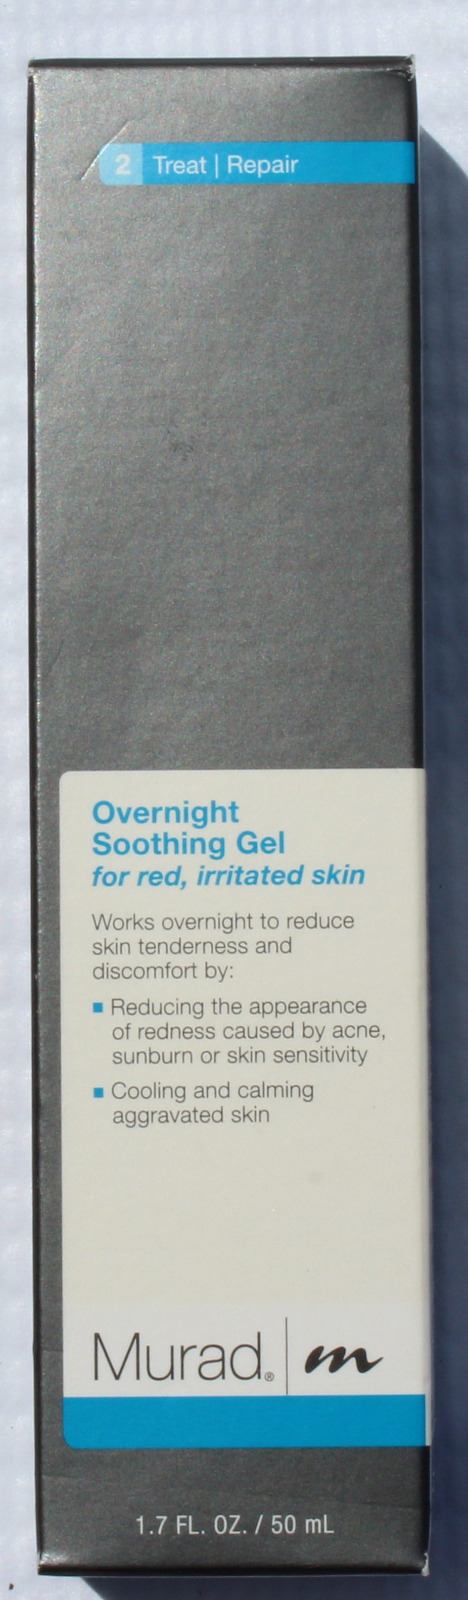 Overnight Soothing Gel